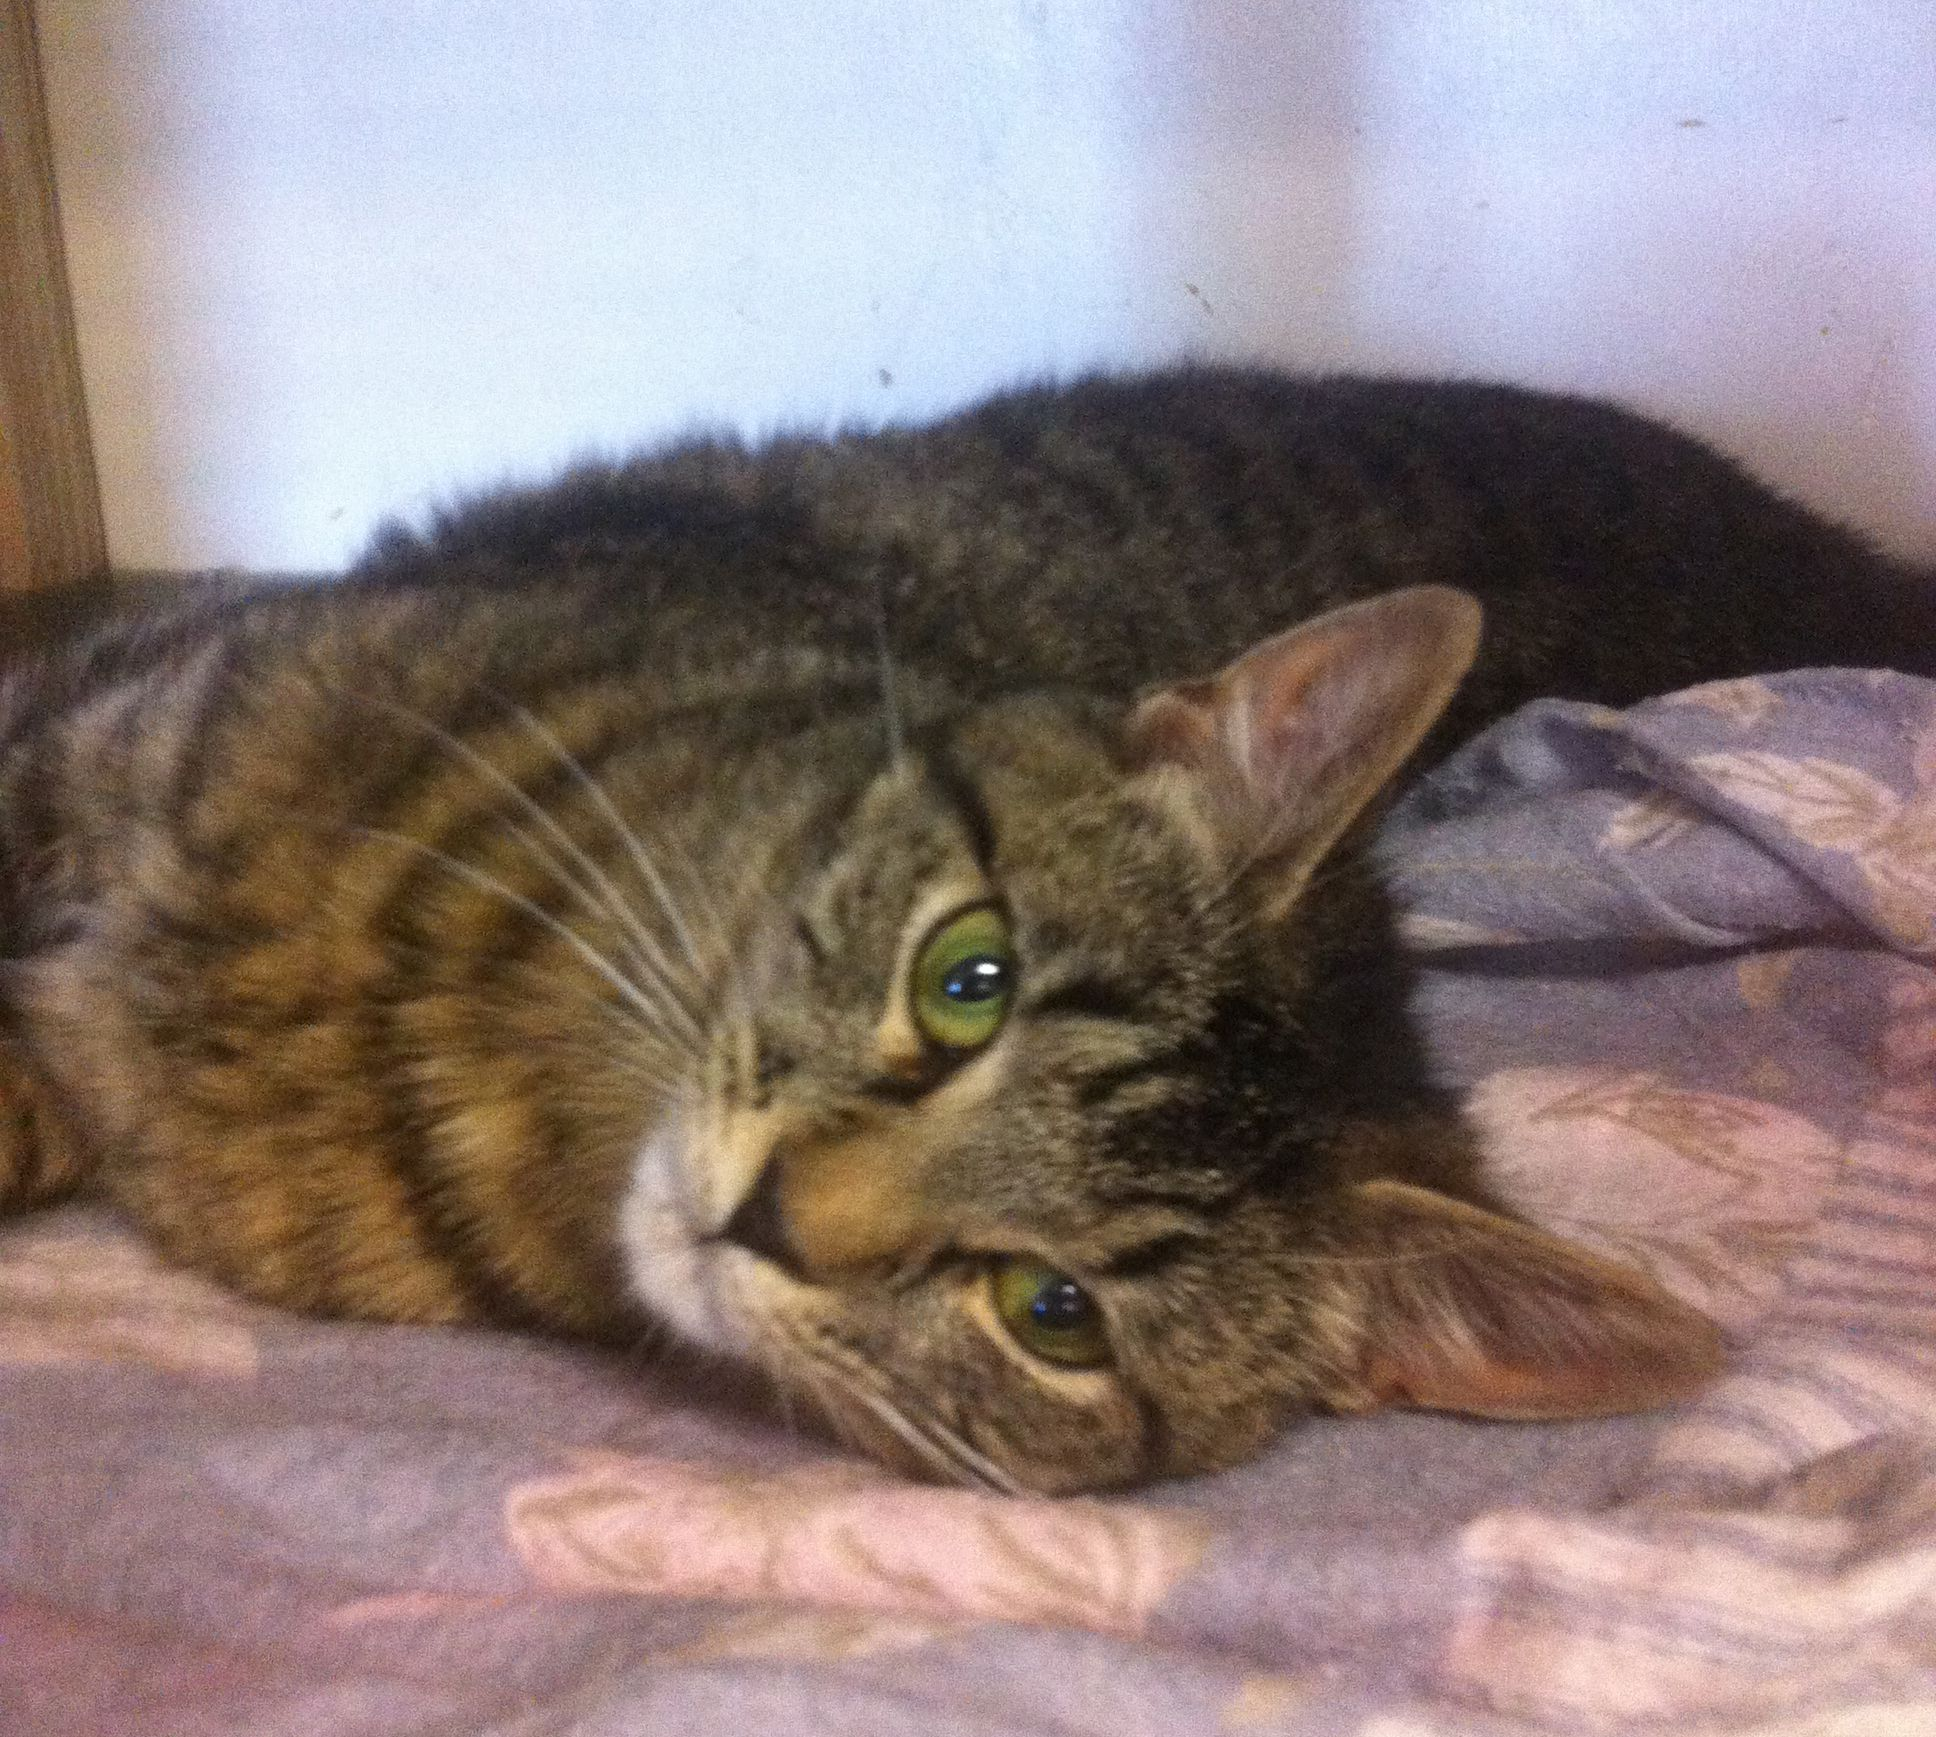 Cicari Is A 10 Month Old Female Domestic Short Hair Tabby She Gets Along Well With Other Cats And Is Just Learning About Dogs She I Pets Cute Animals Tabby